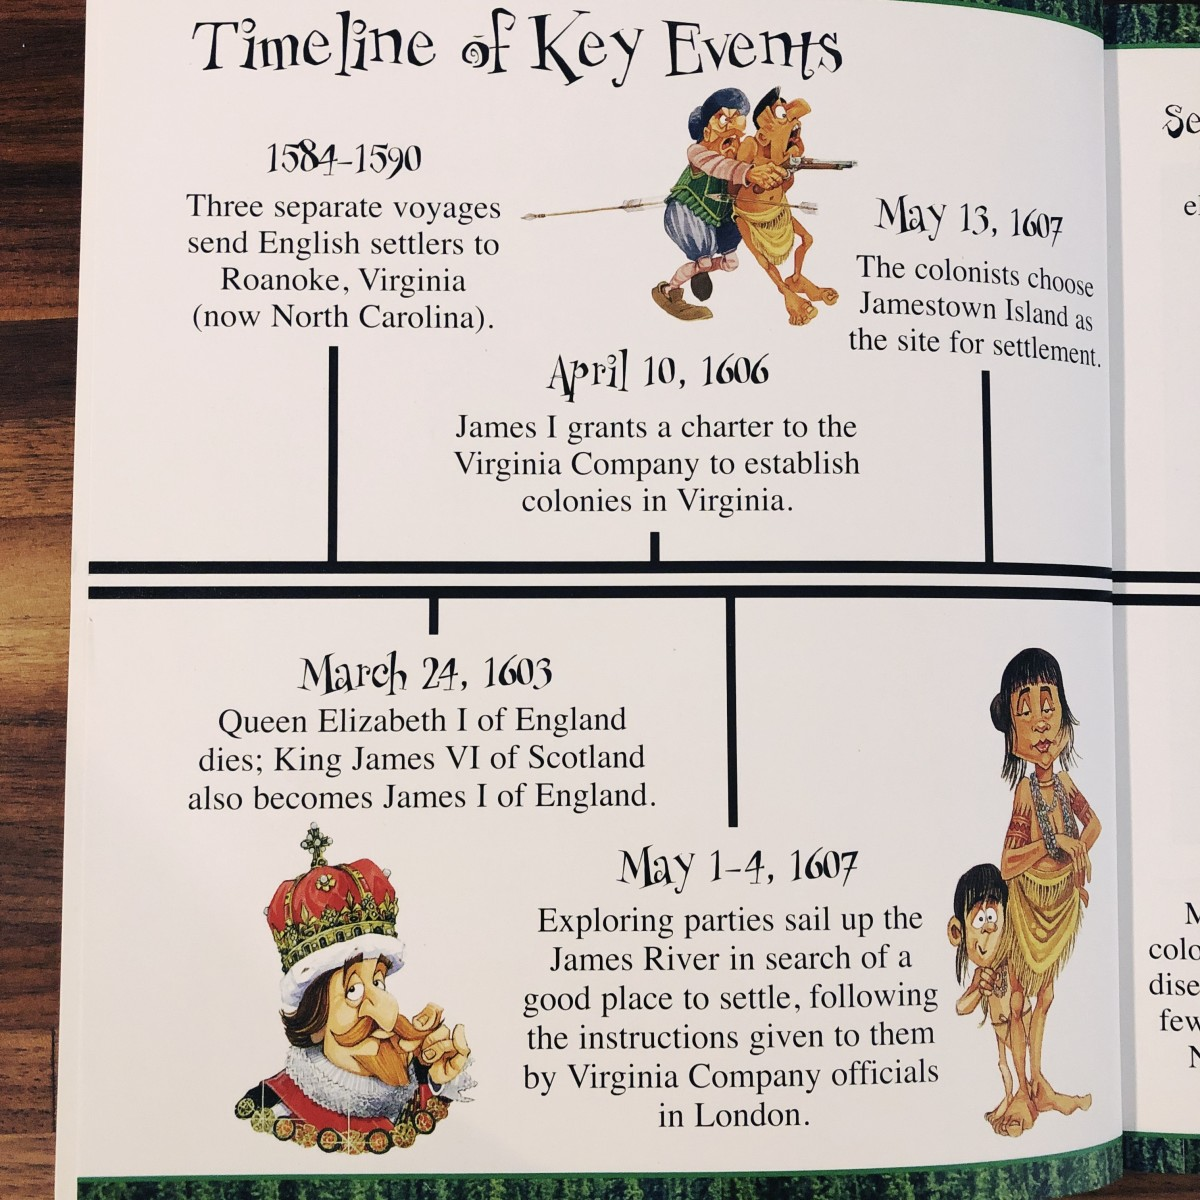 The timeline at the start of the book.